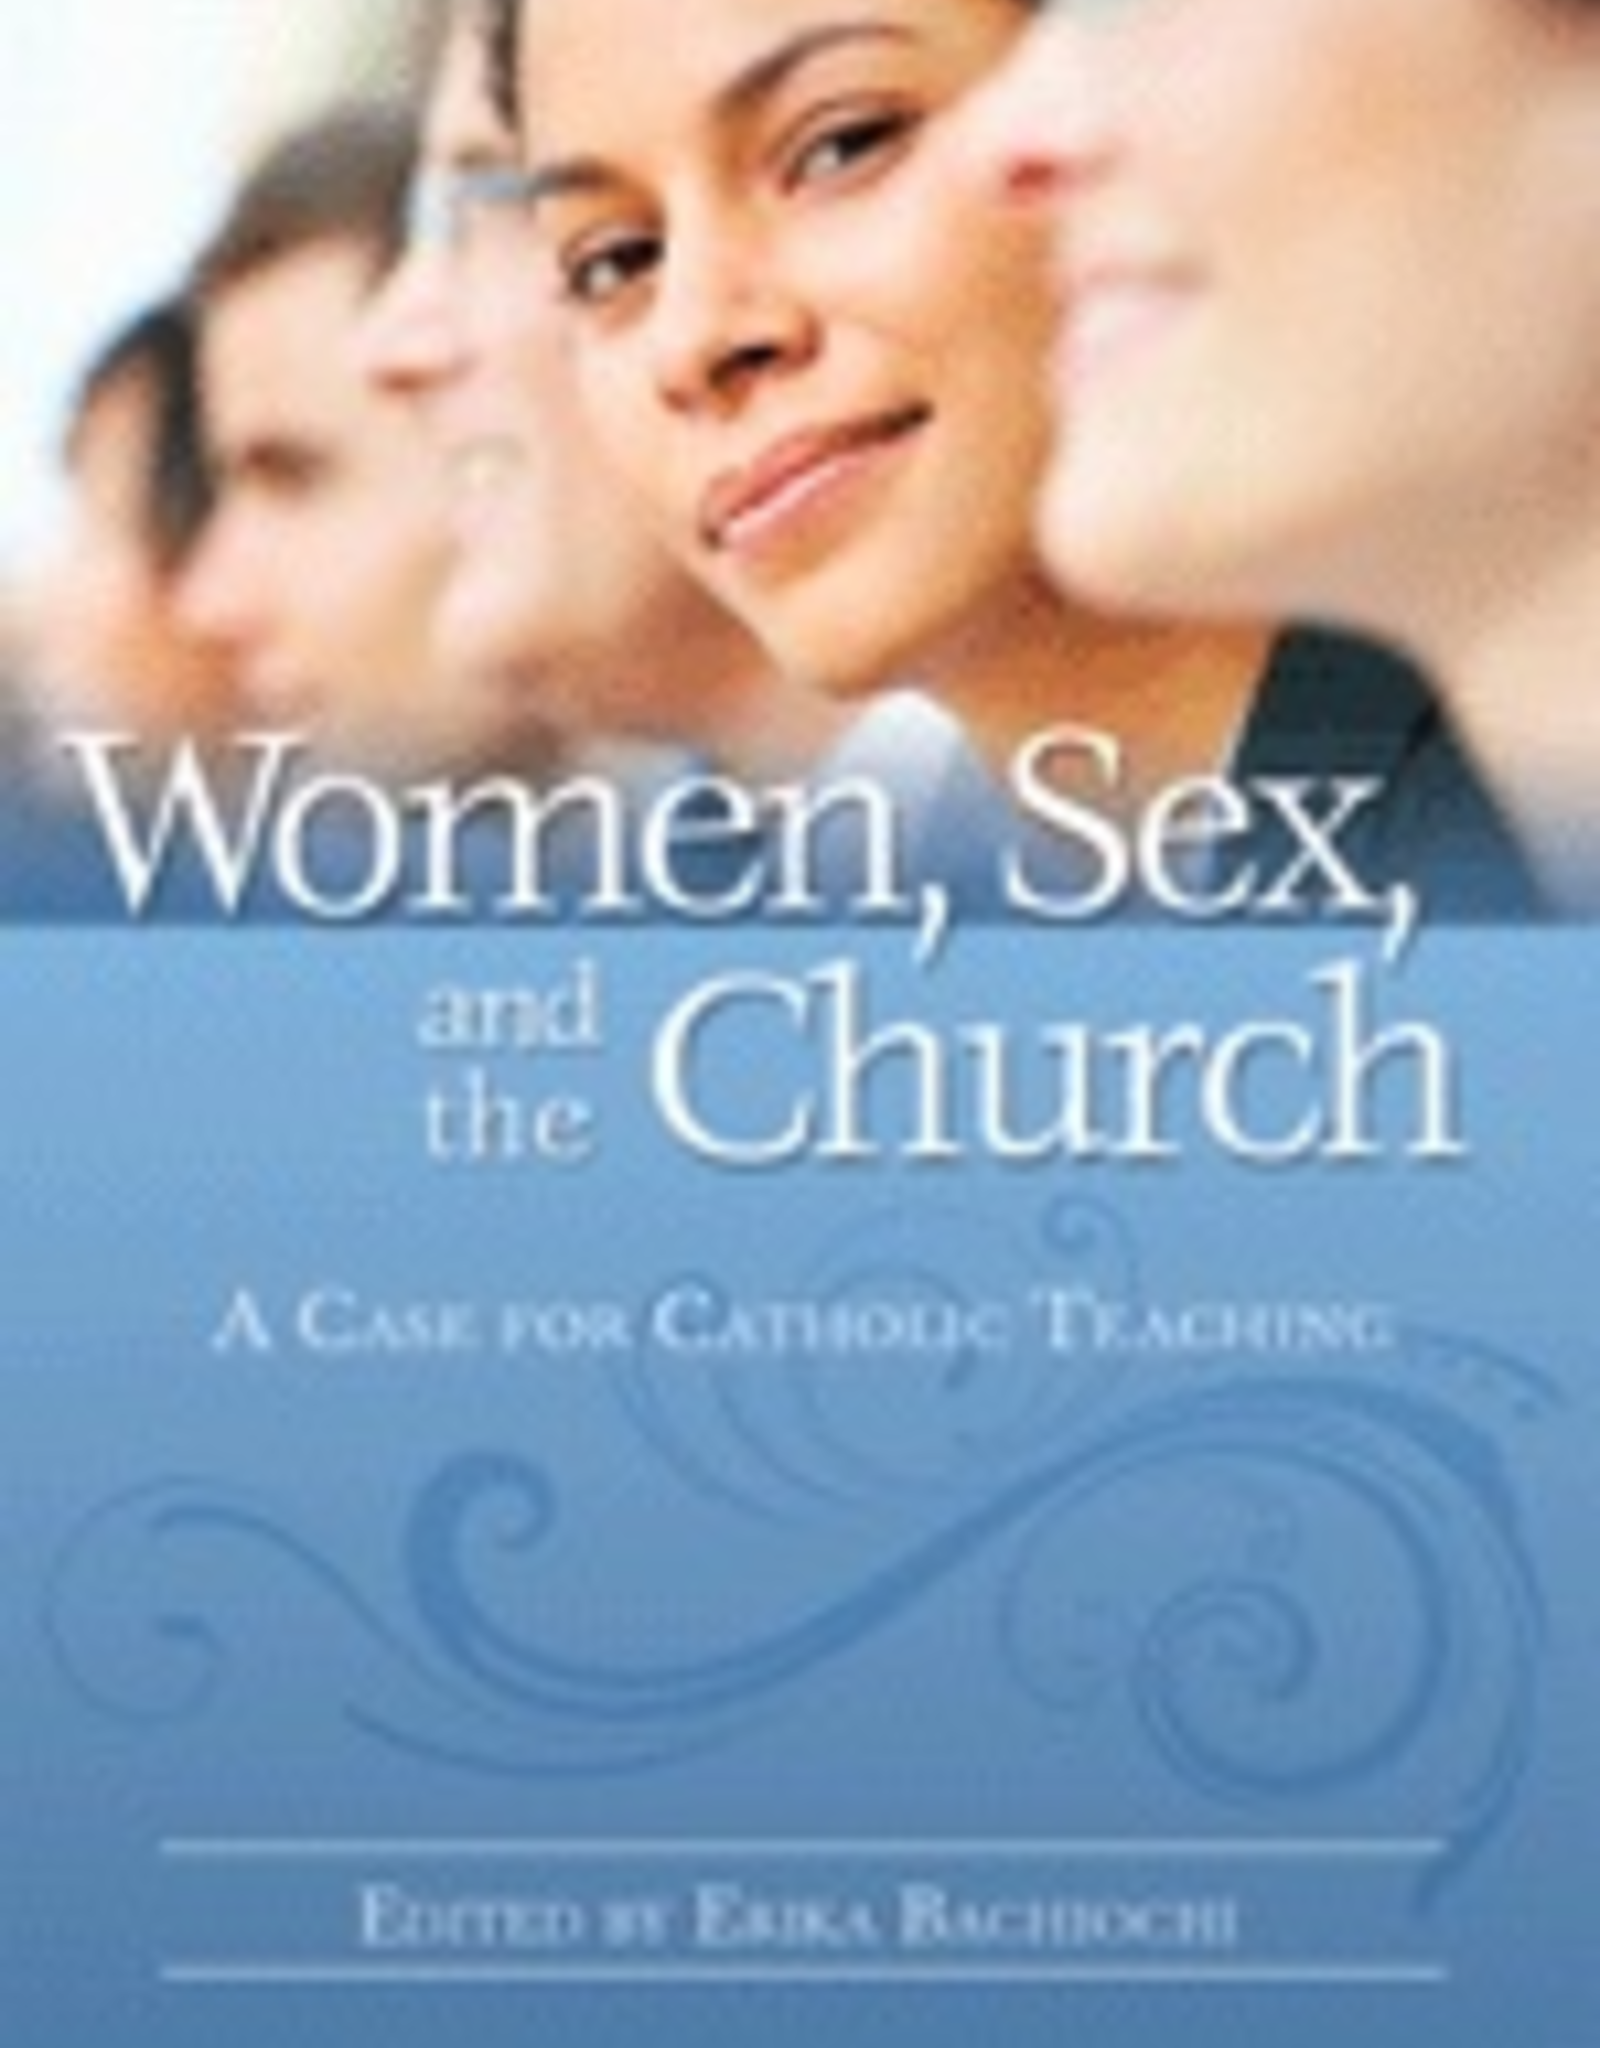 Pauline Women, Sex and the Church:  A Case for Catholic Teaching, edited by Erika Bachiochi (paperback)